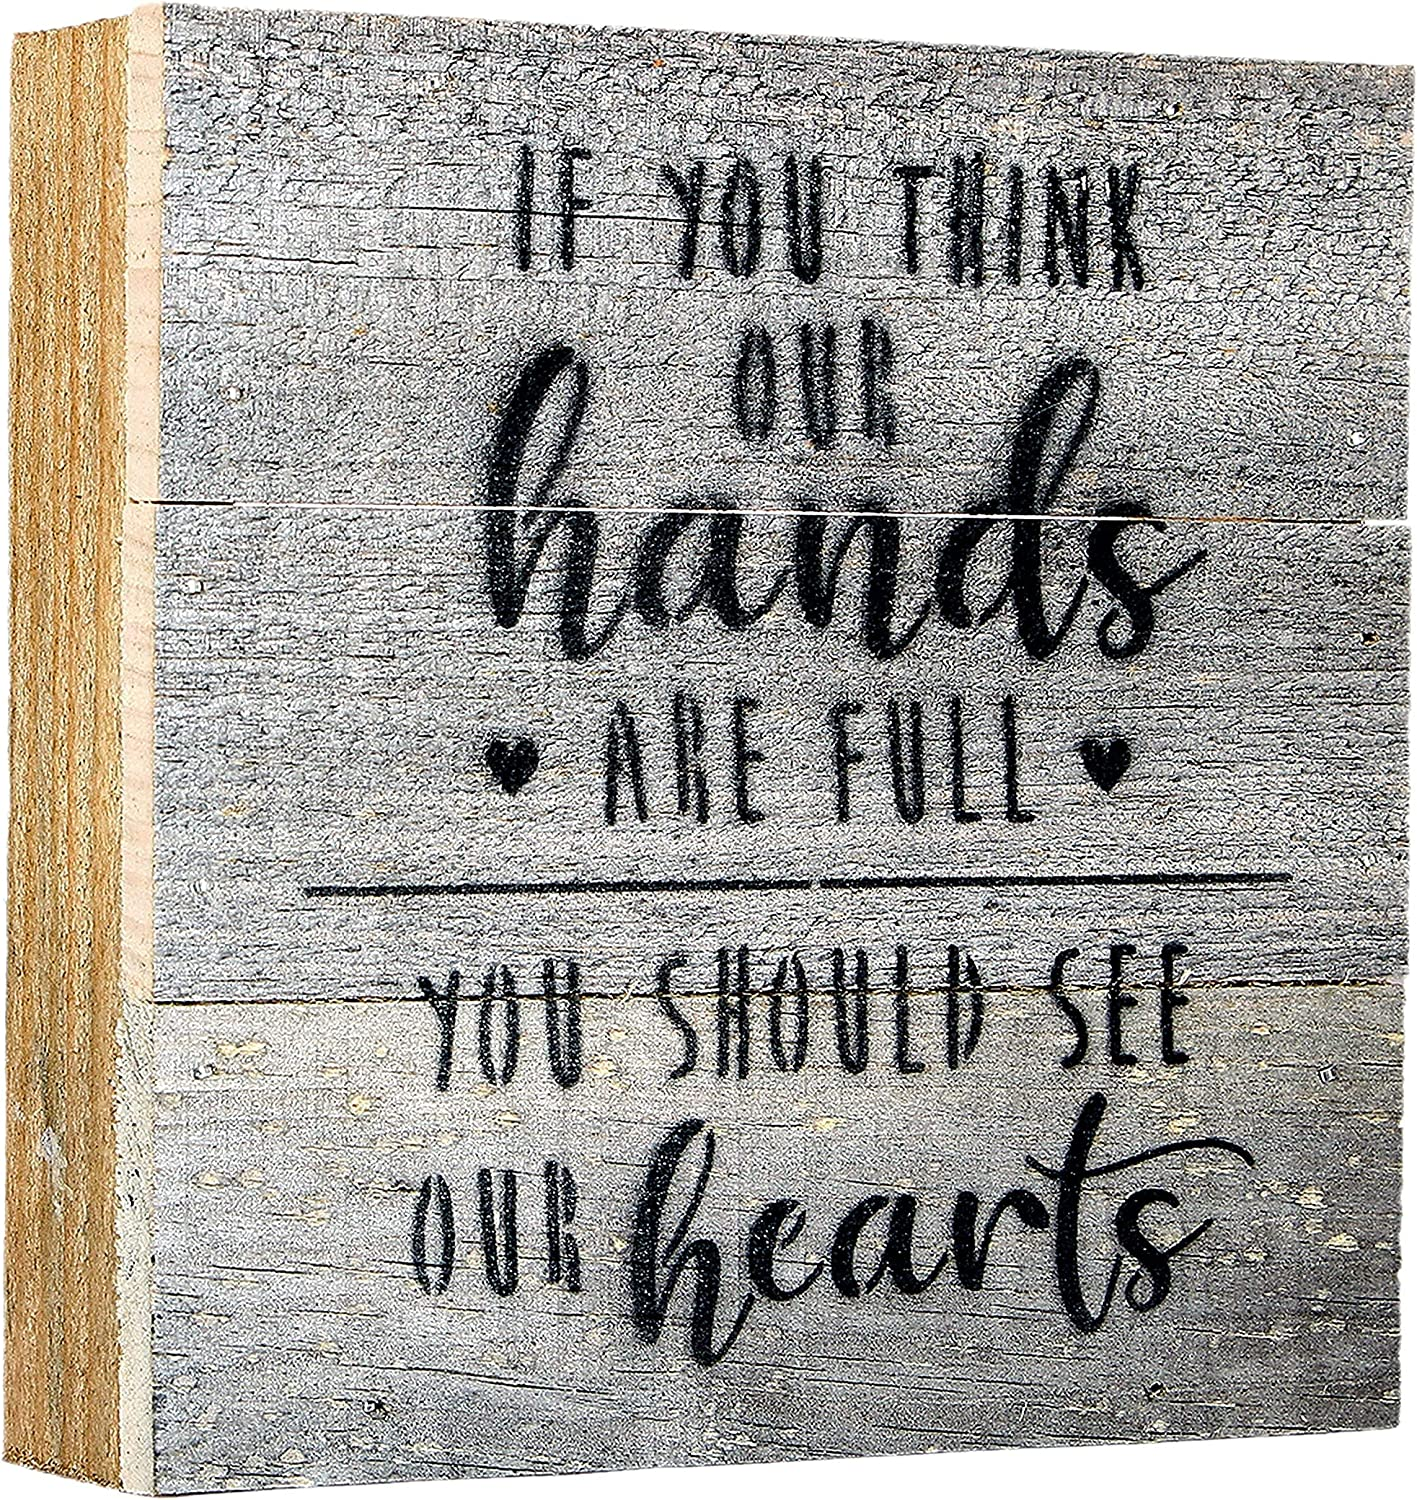 If You Think Our Hands Are Full You Should See Our Hearts Sign, Family Sign Rustic Tier Tray Decor, Inspirational Family Quotes Wall Decor Wood Box Sign, Mini Hands are Full Box Sign USA Handmade